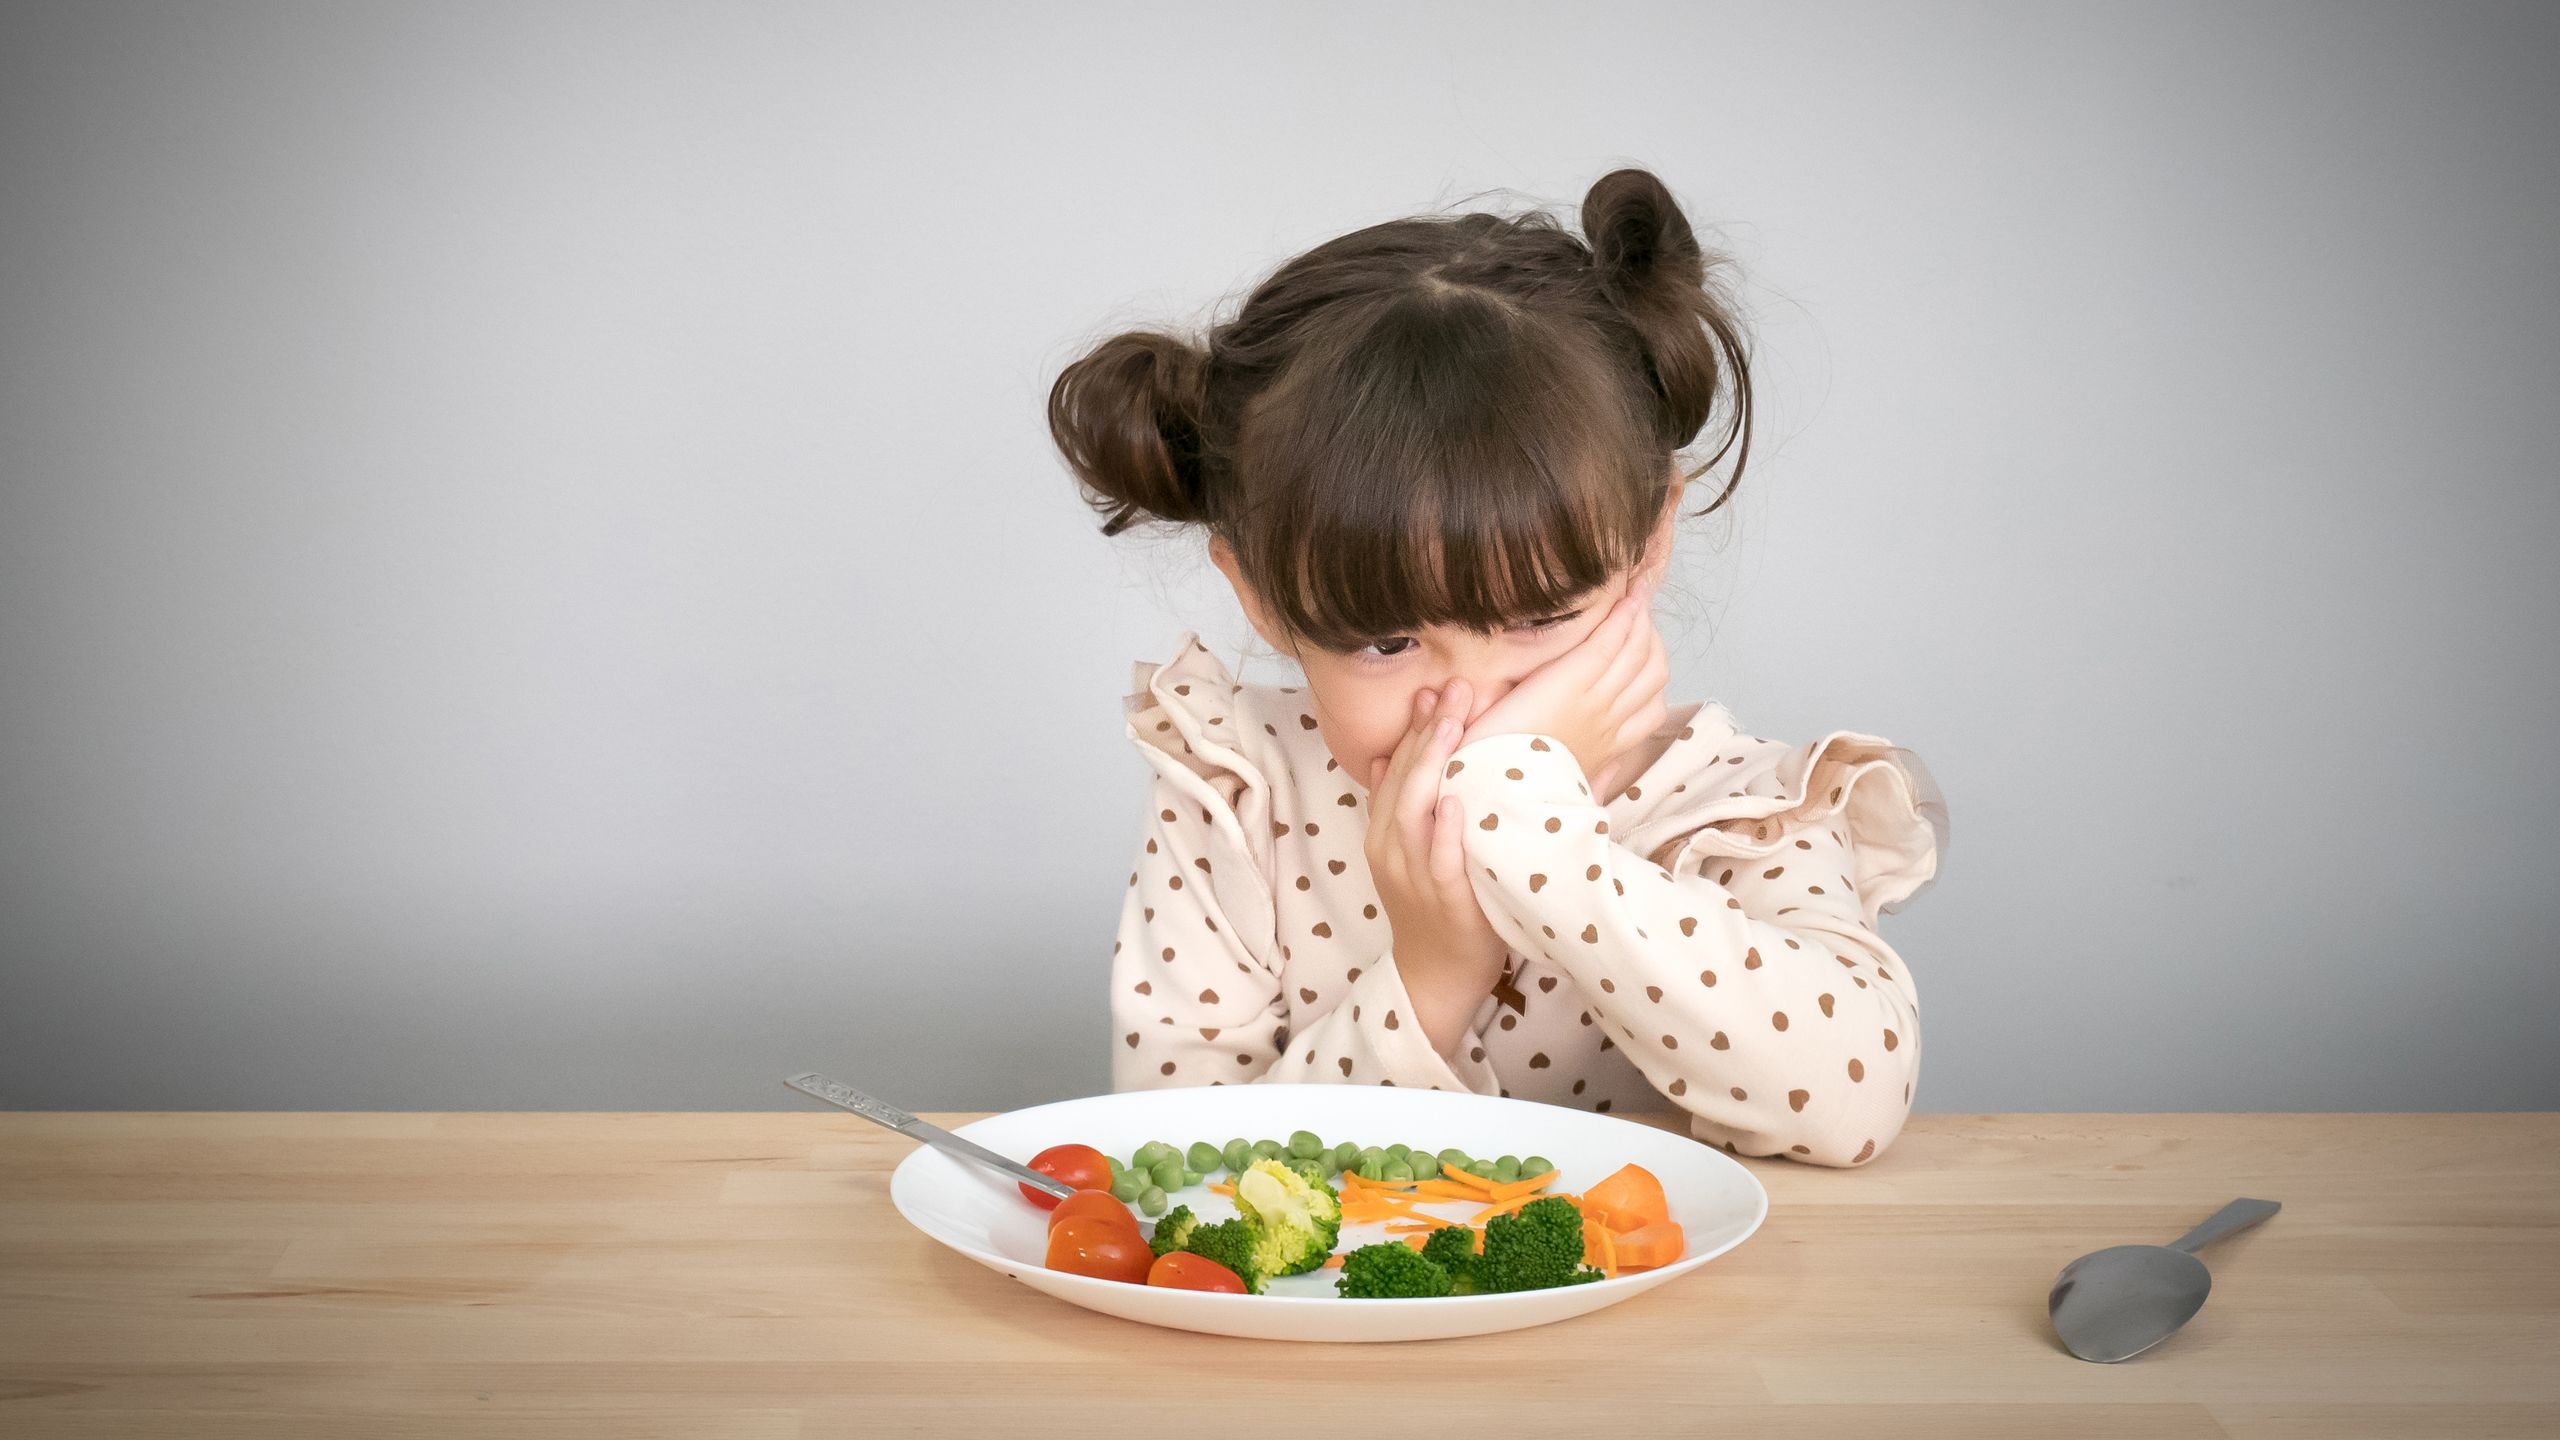 Dieting at Young Age Often Backfires